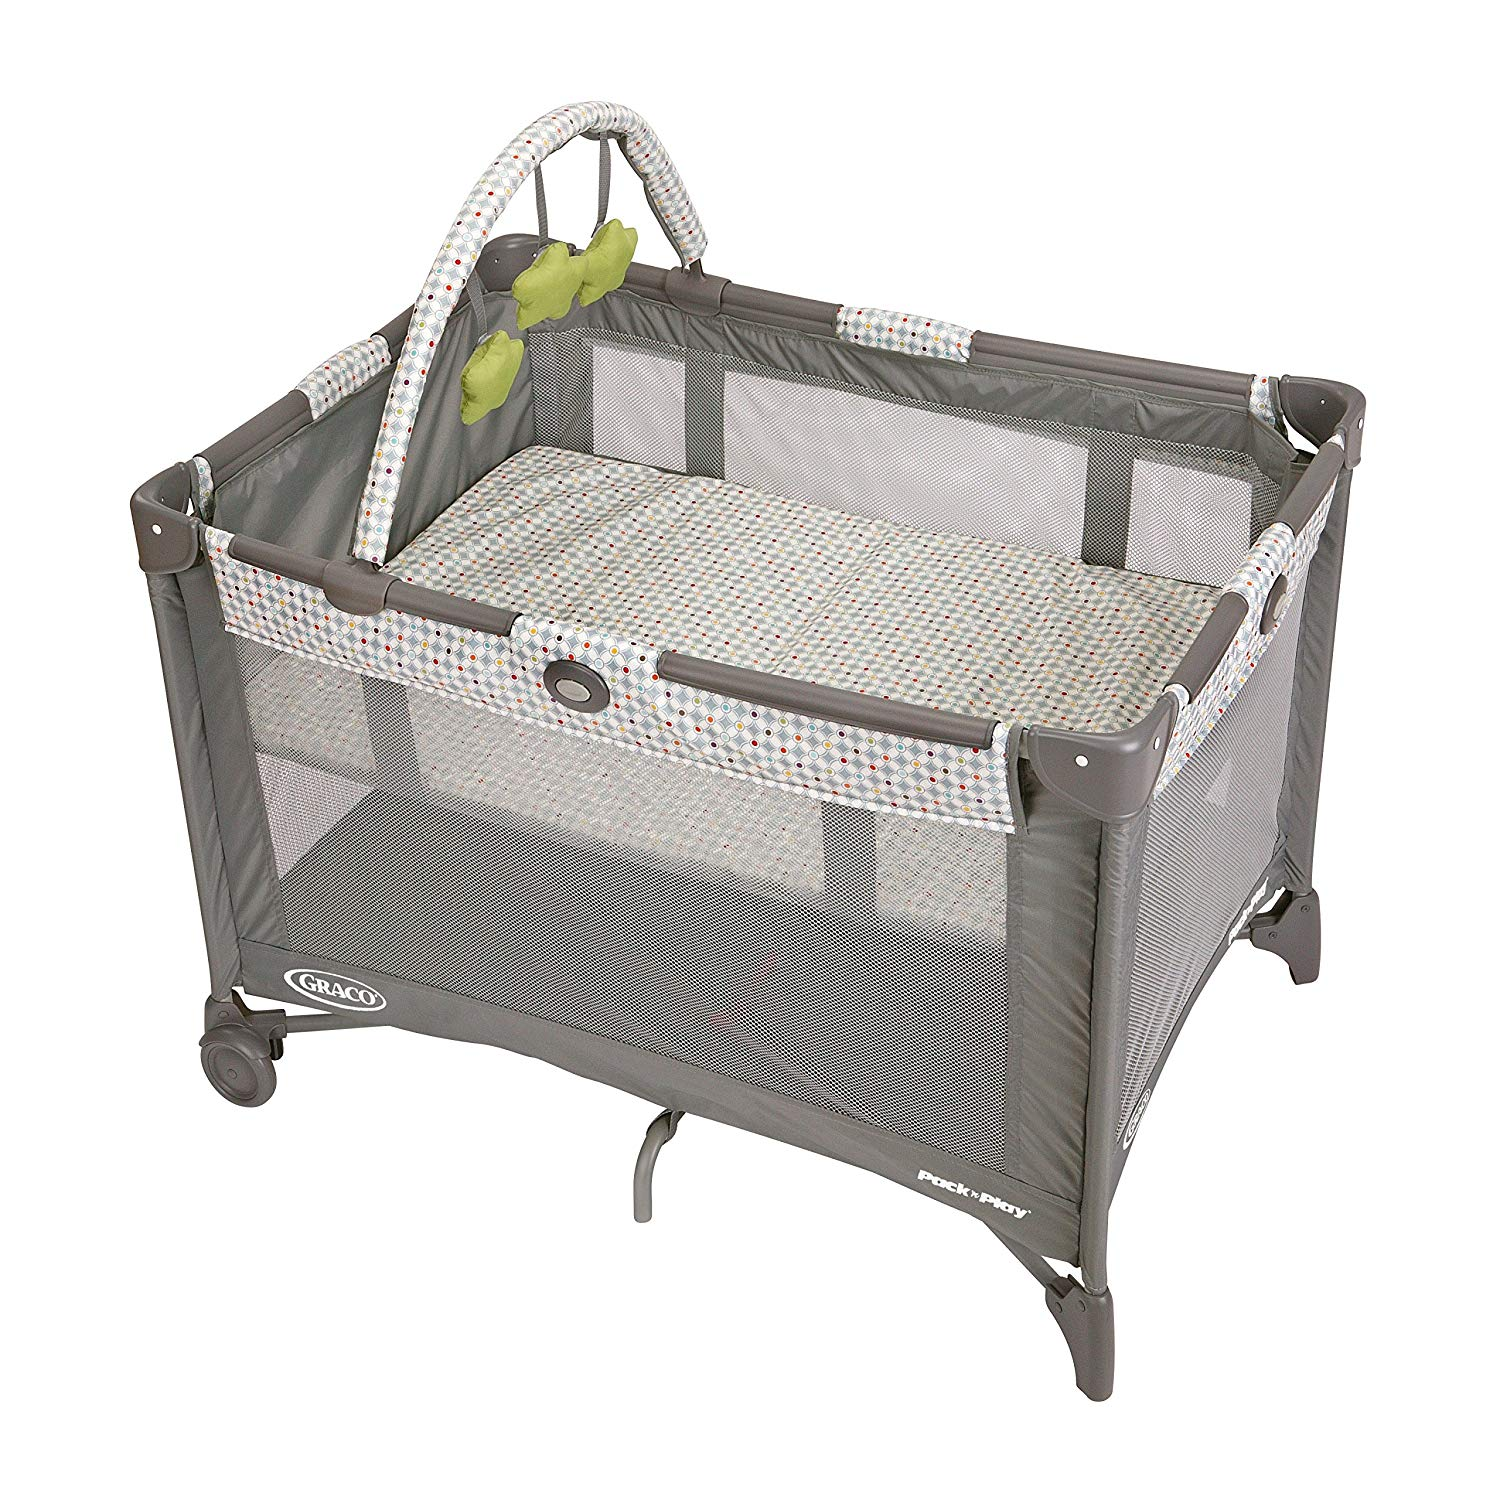 Graco Pack 'n Play On the Go Play yard